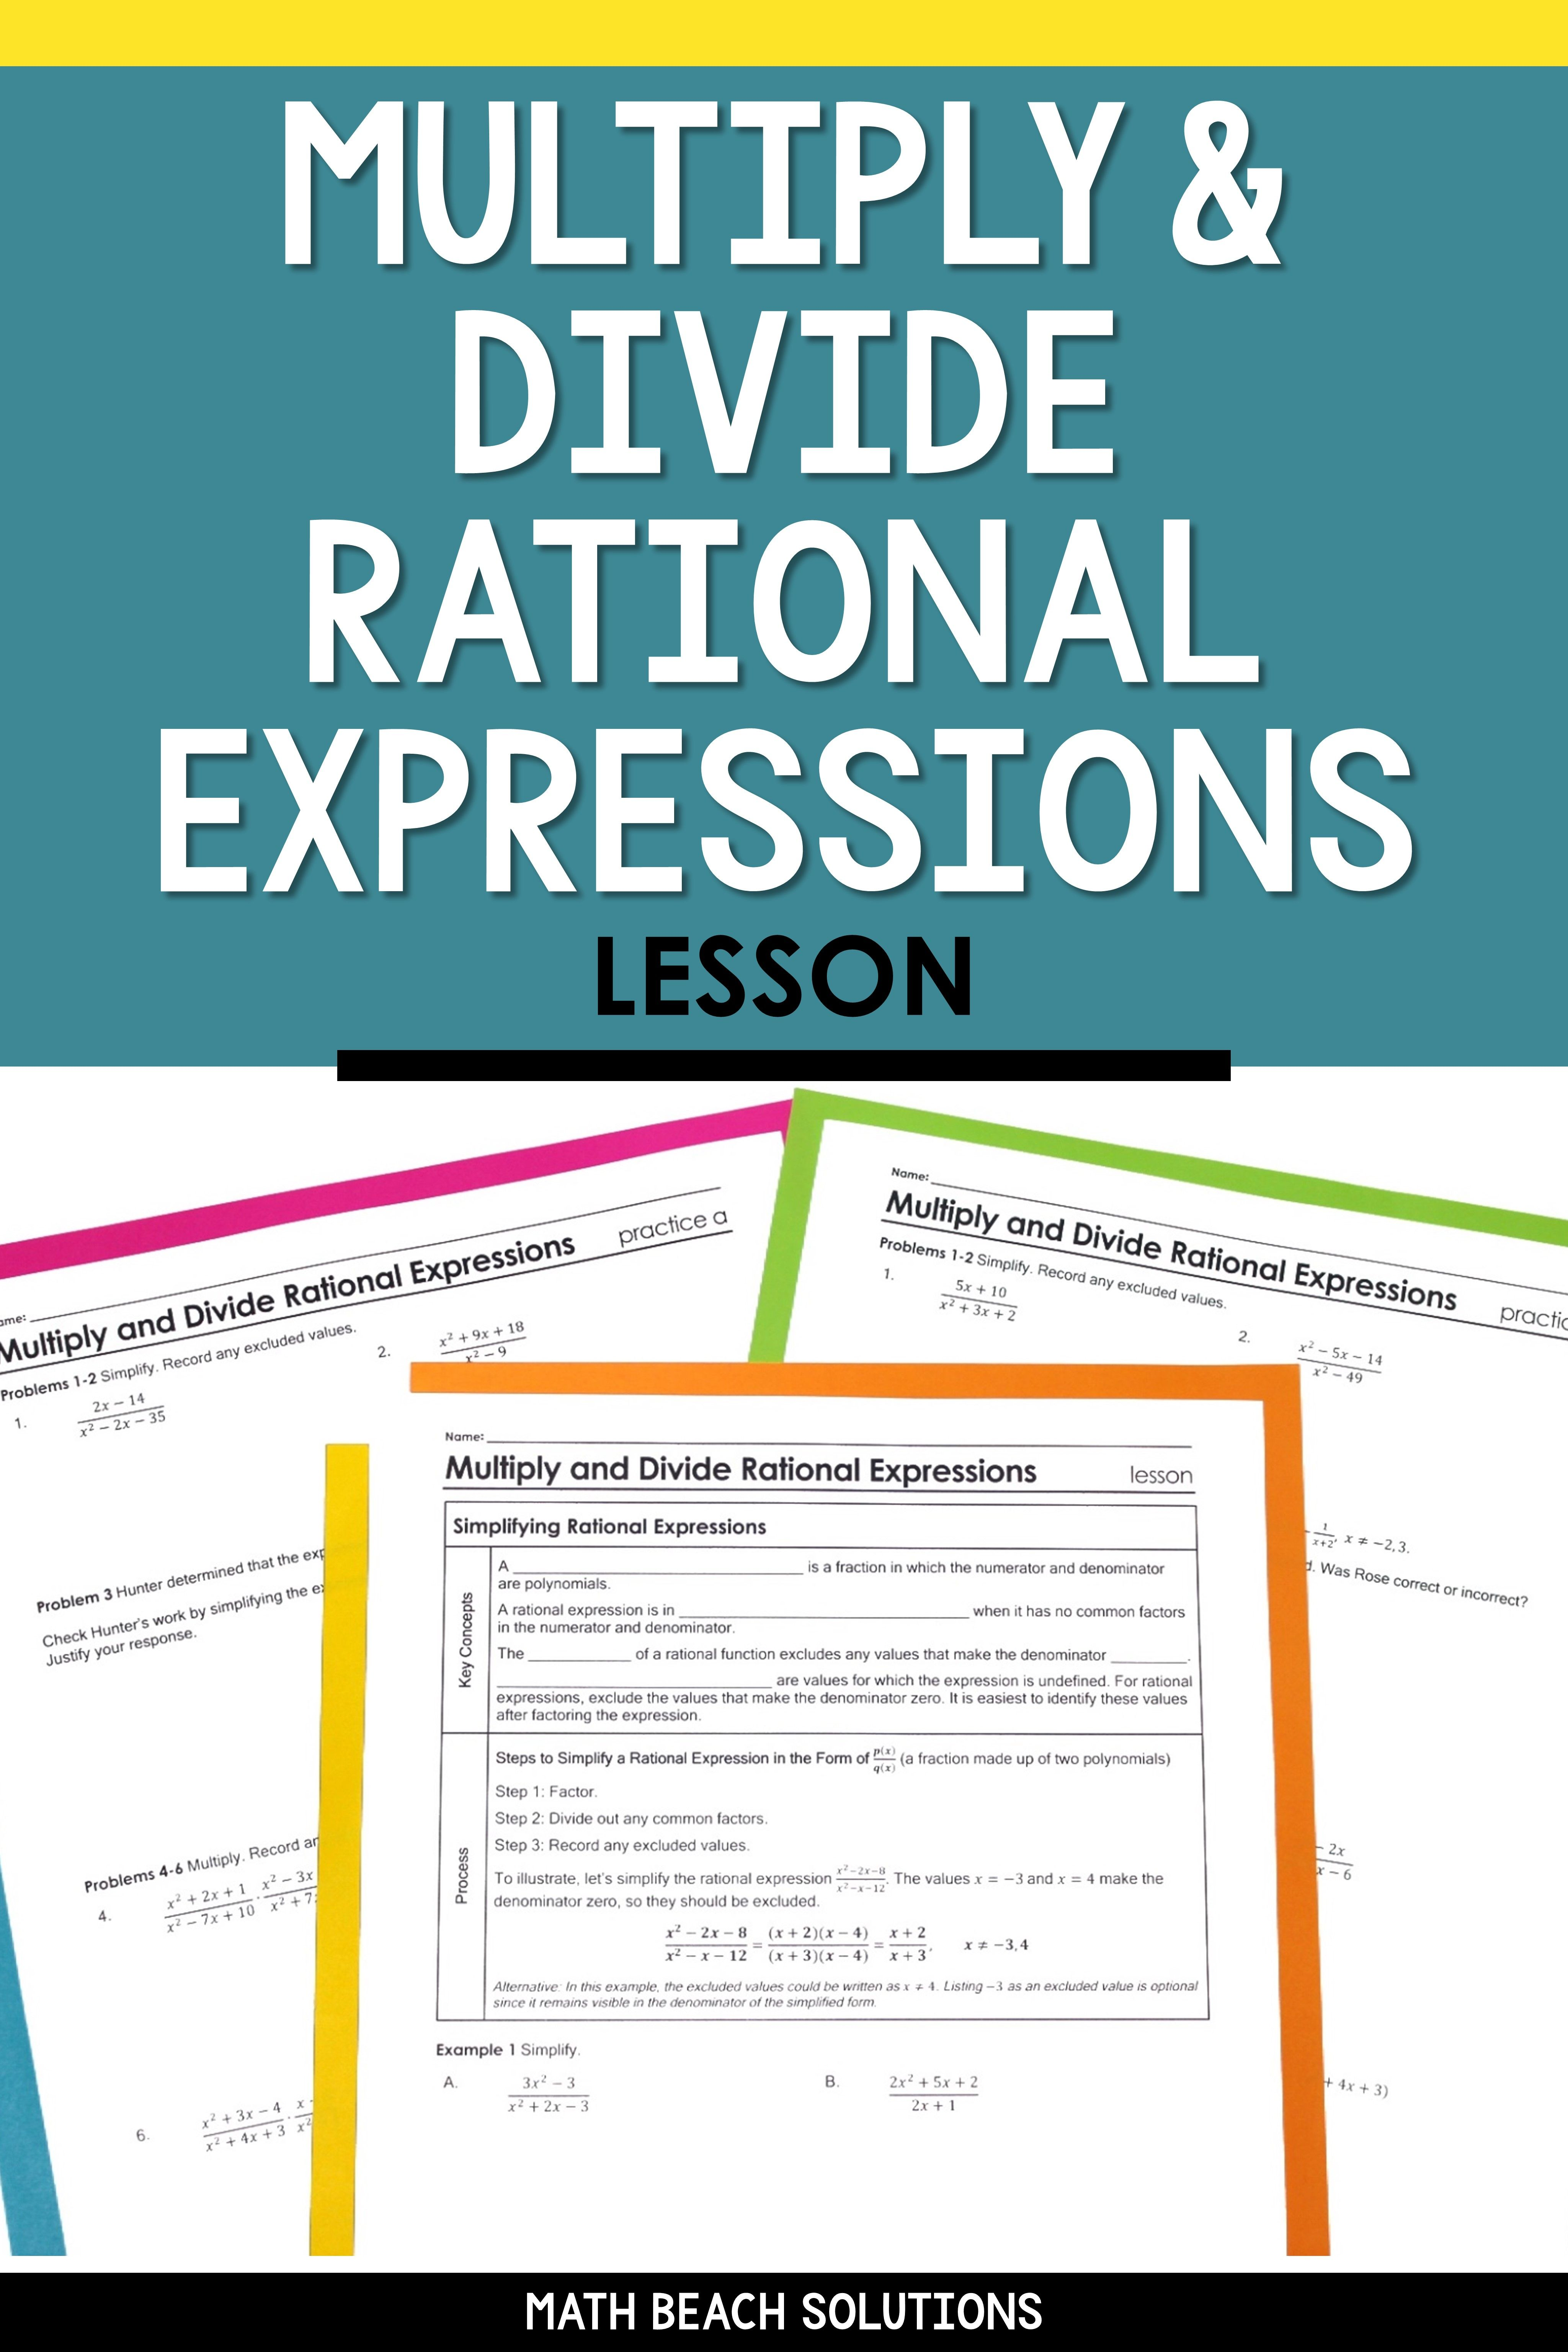 Multiply And Divide Rational Expressions Lesson